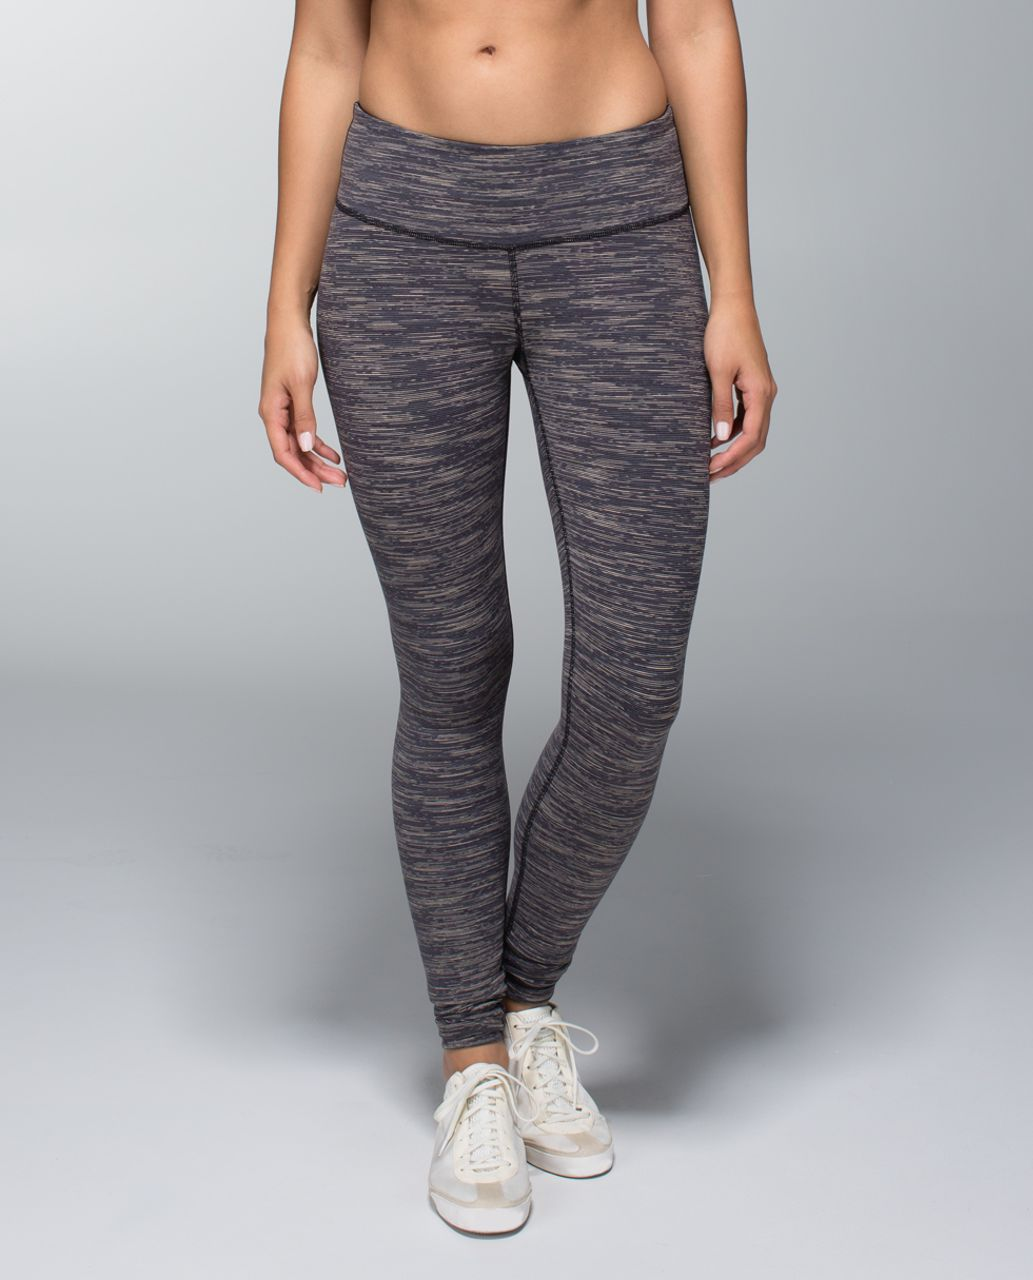 Lululemon Wunder Under Pant - Wee Are From Space Black Cashew / Black